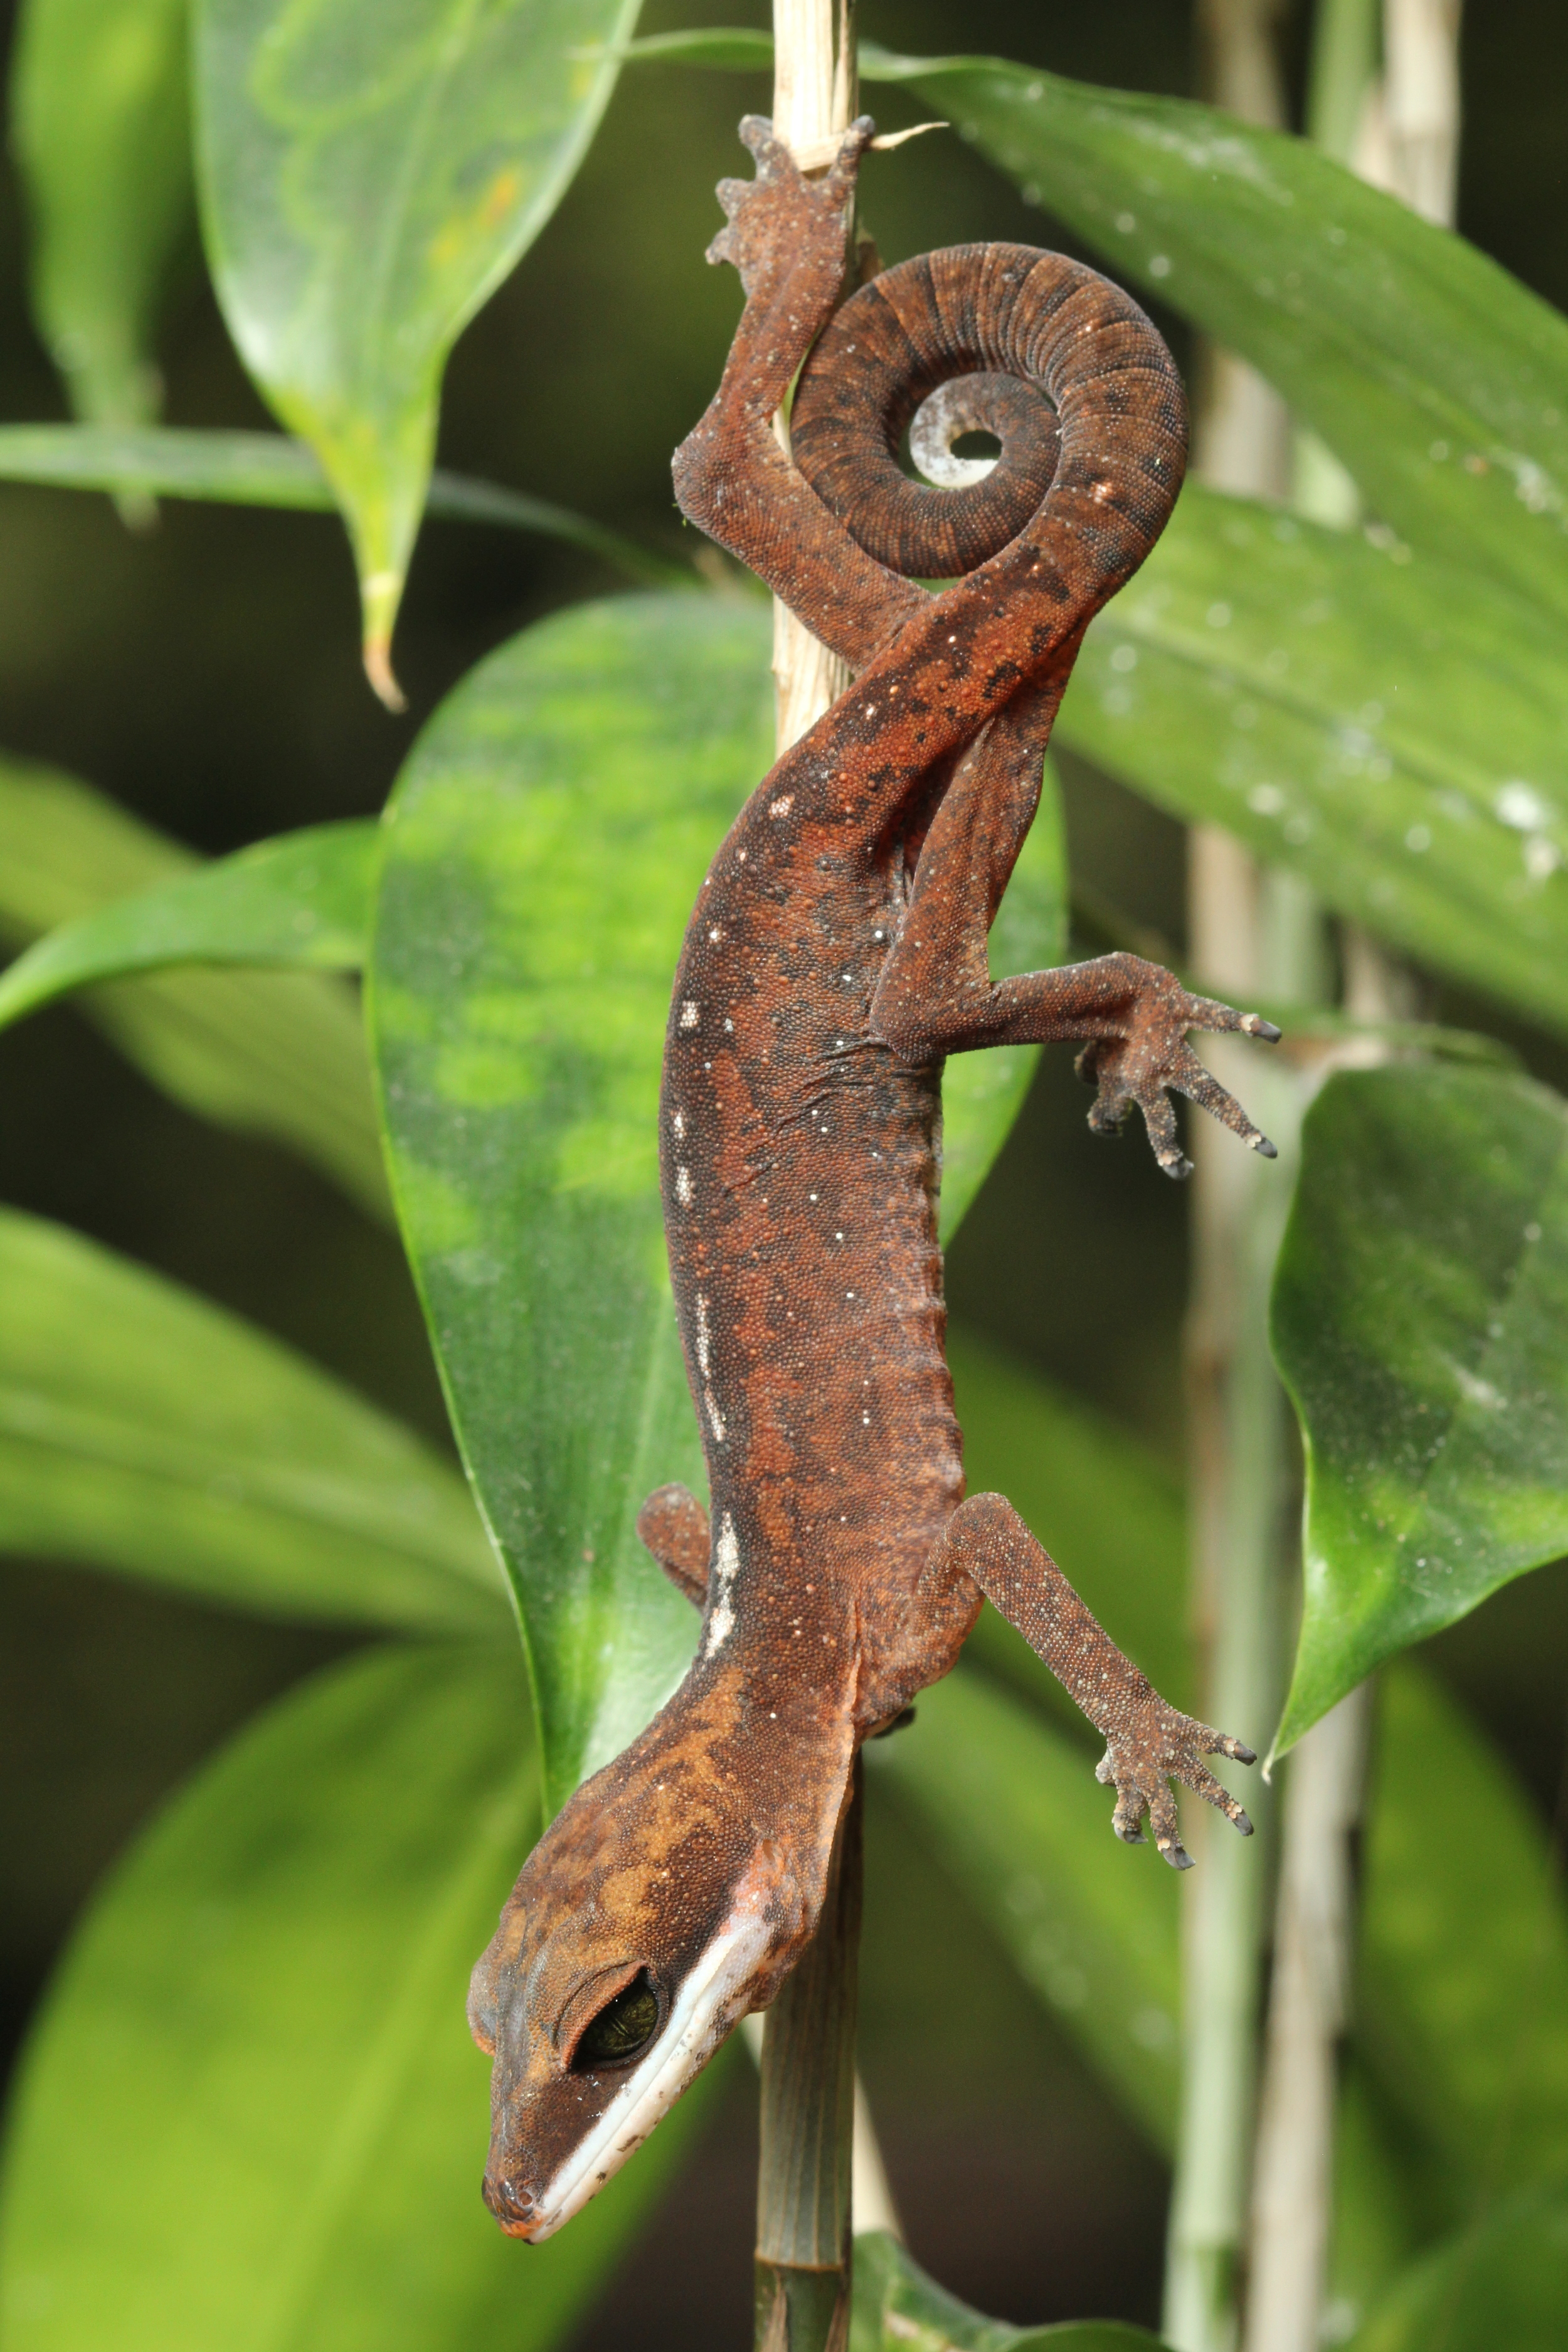 Aeluroscalabotes felinus , the Cat Gecko, so named for the retractable claws that disappear into sheaths, similar to cats.  photo credit: Jackie Childers